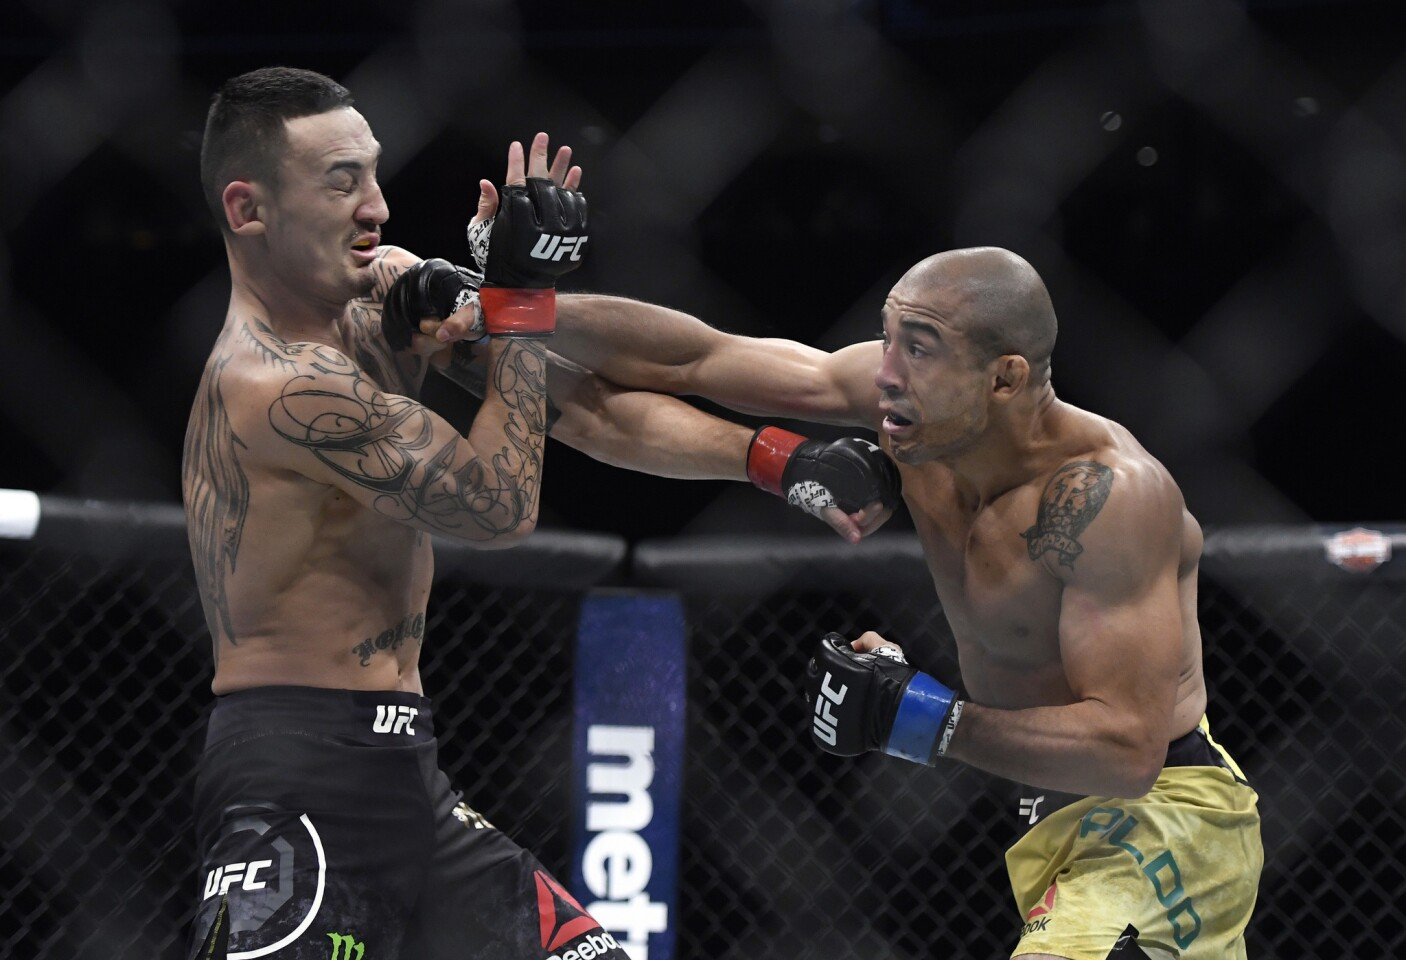 Jose Aldo lands an overhand right against Max Holloway during the first round of their featherweight title fight at UFC 218.